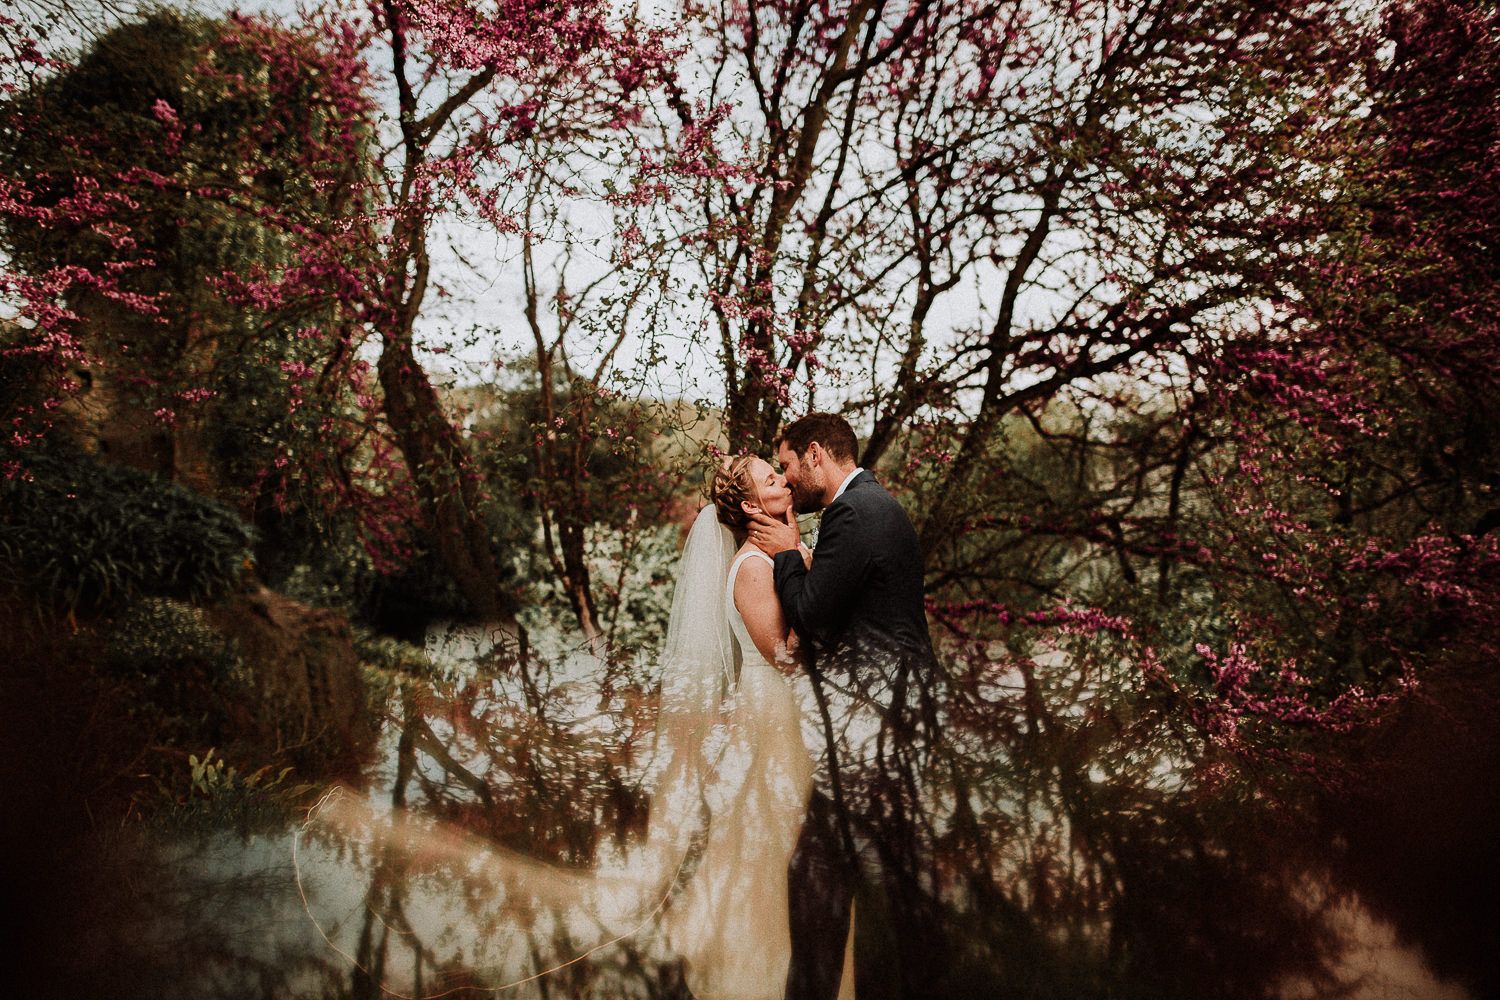 Destination artistic and emotional wedding photography in Italy